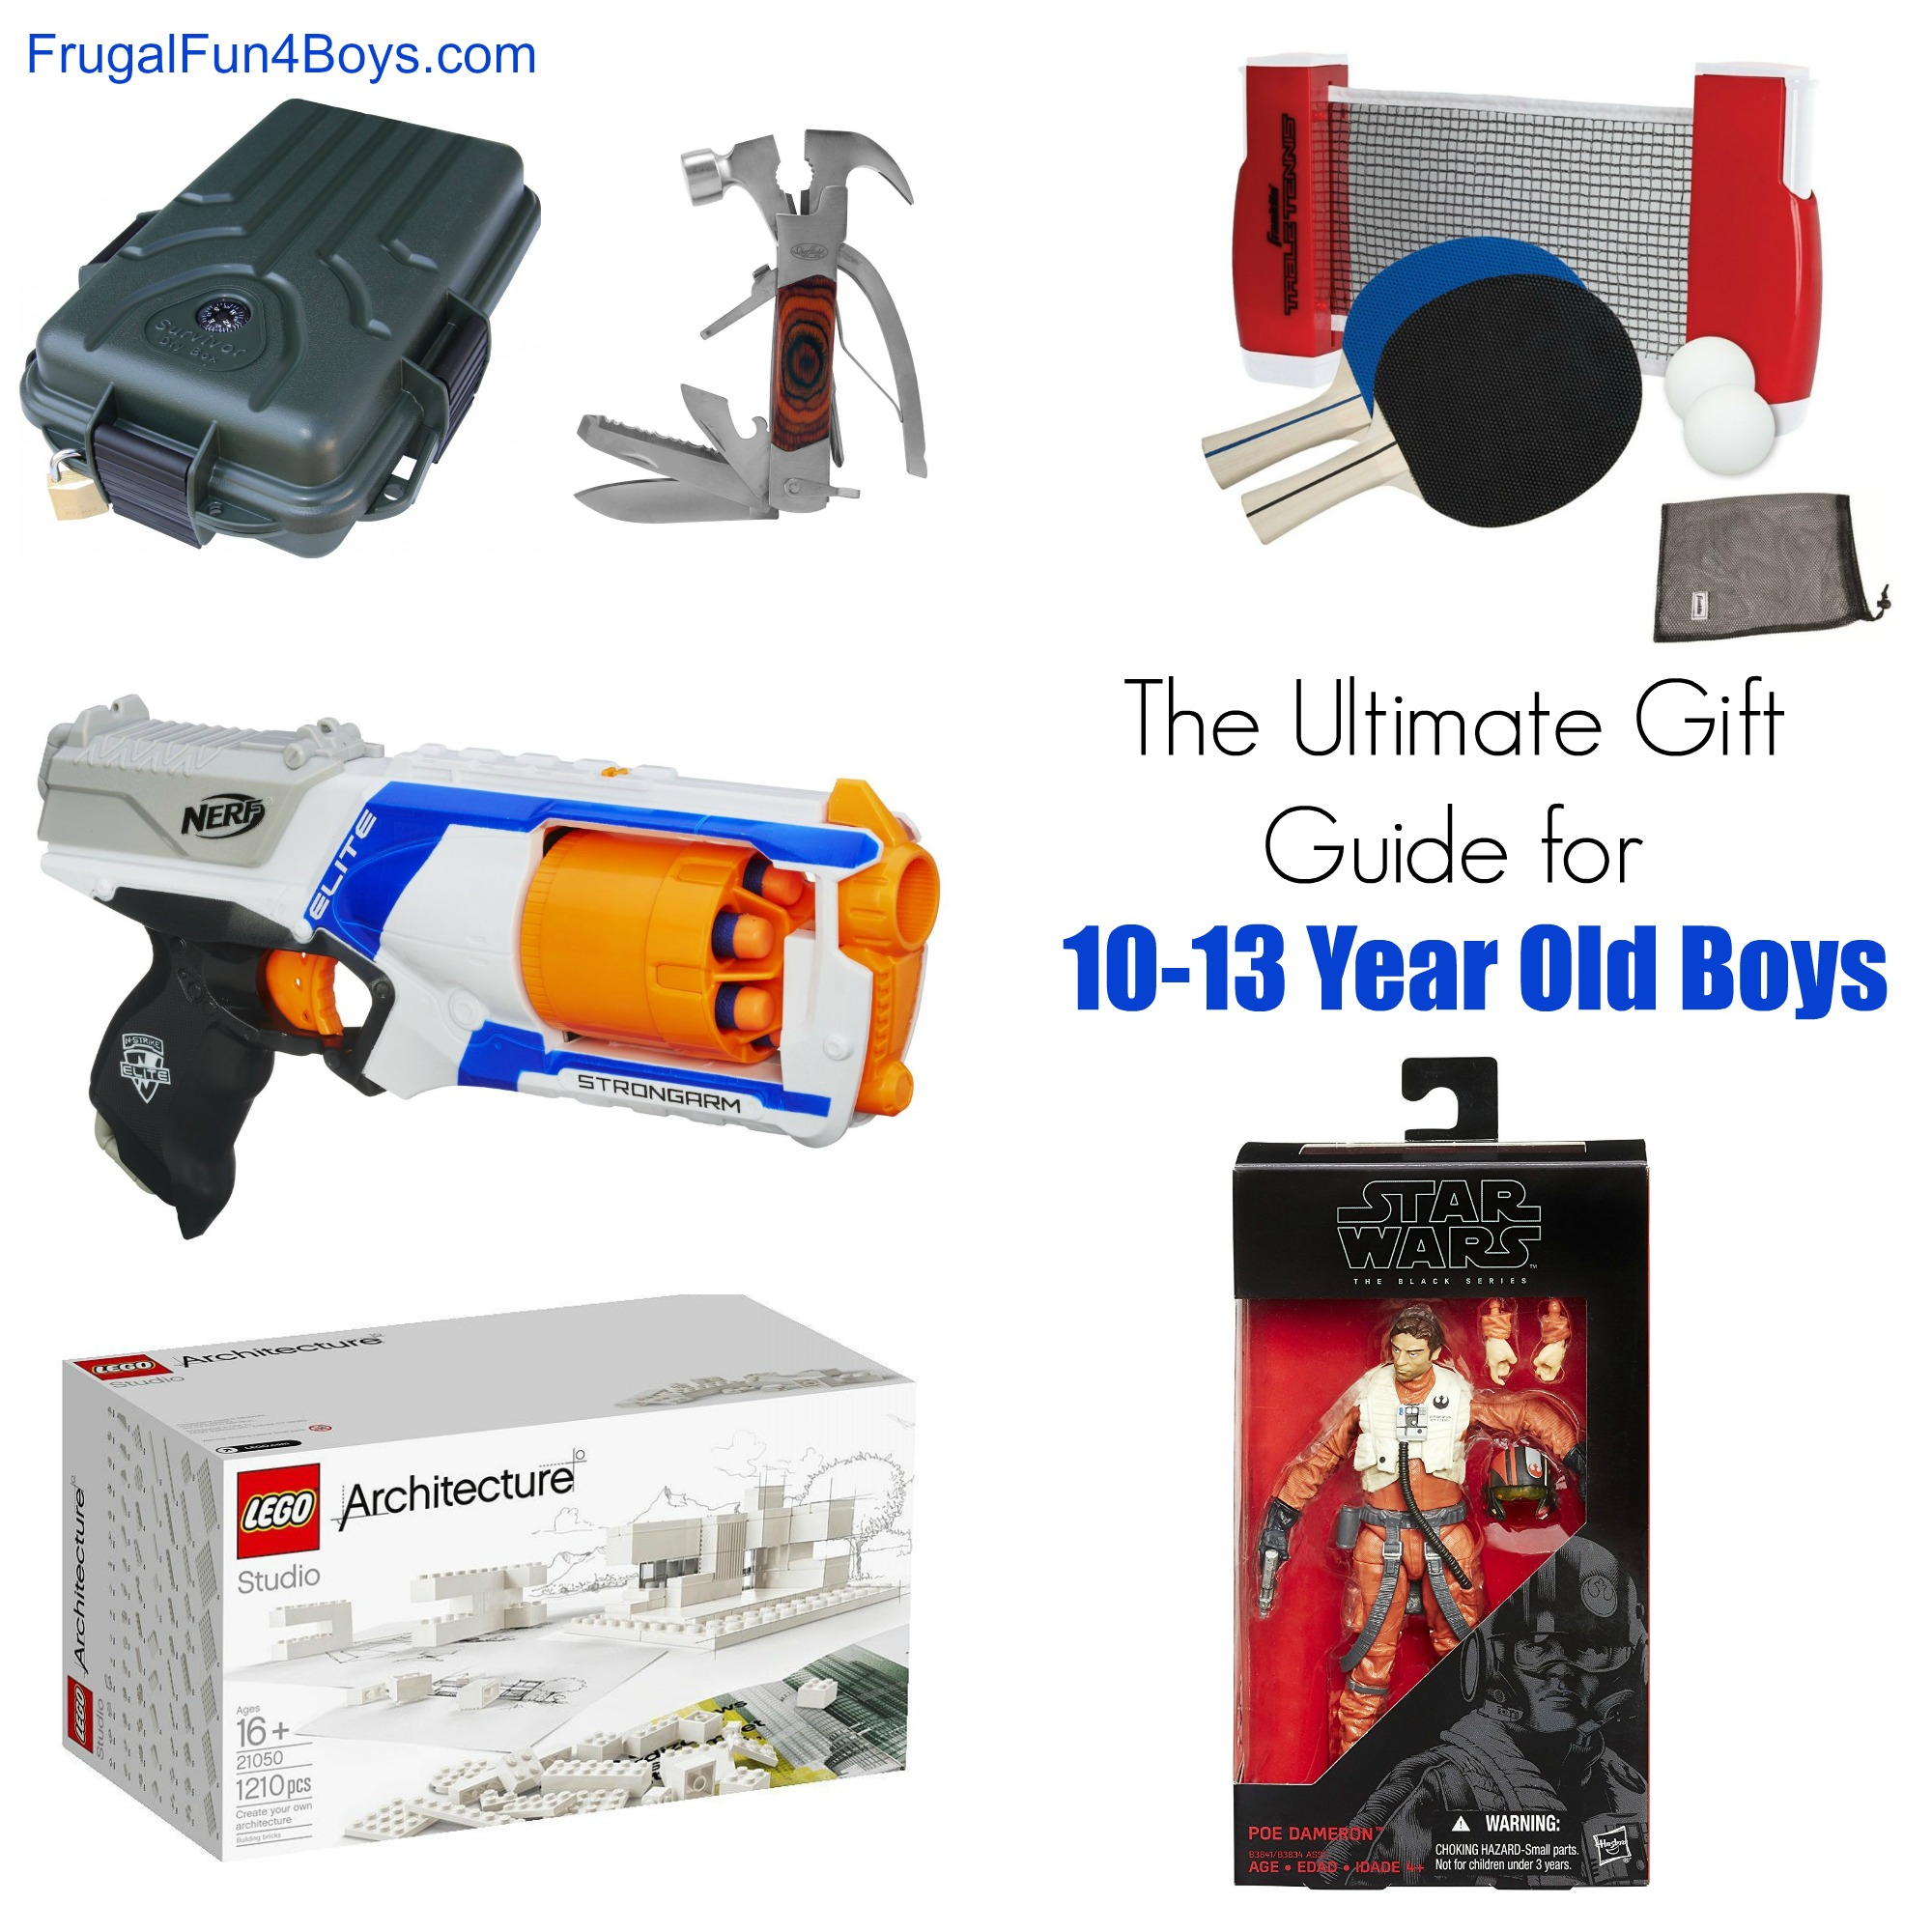 Fantastic Girls Gifts Gifts Year Boys Gift Ideas Boys 3 Year Boy 2017 Gifts To Year Boys Frugal 3 Year Boy Canada baby Gifts For 3 Year Old Boy